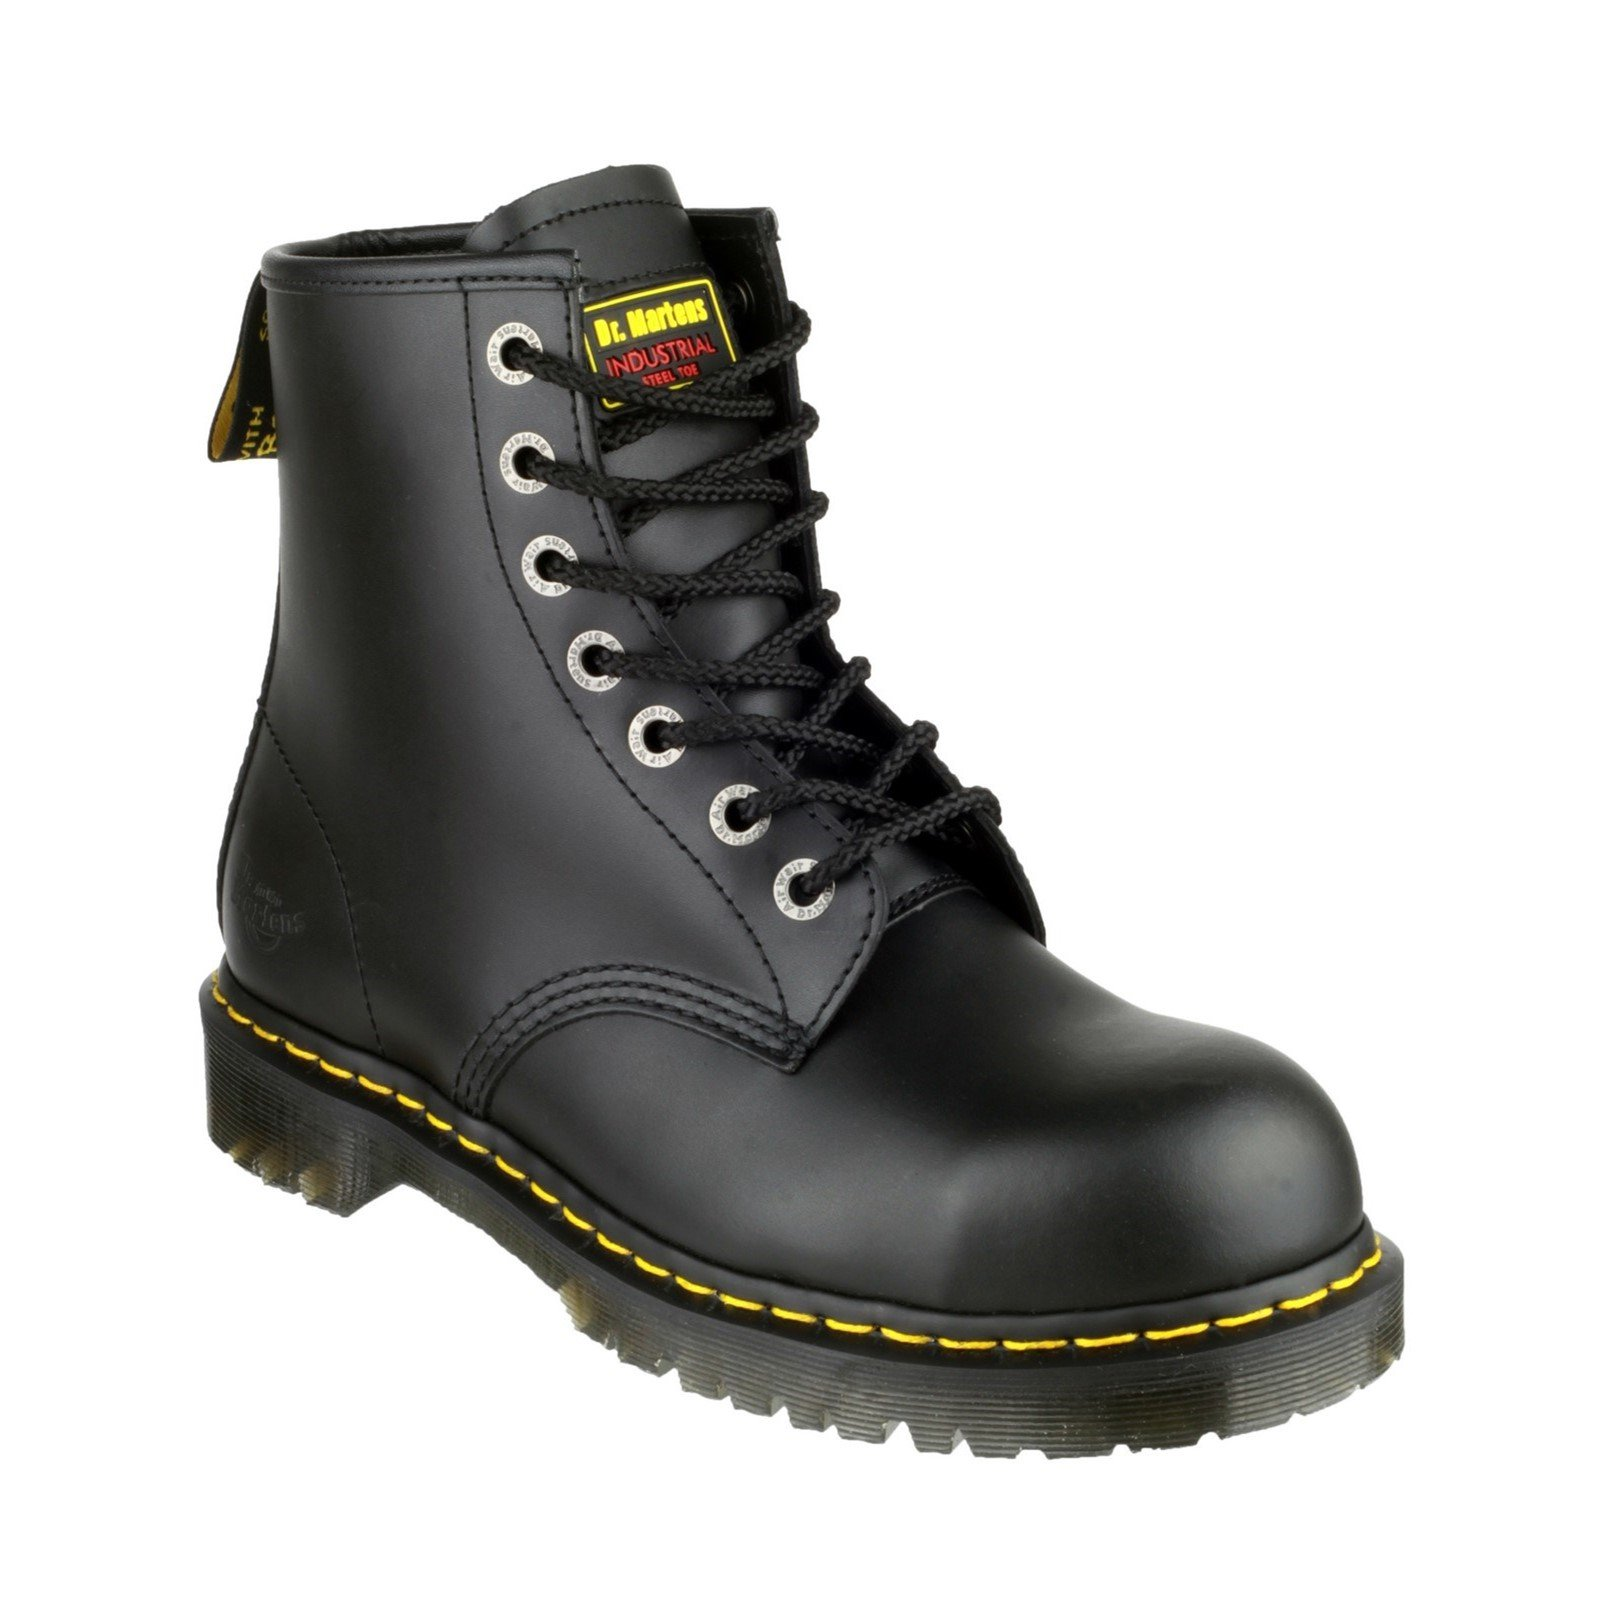 Dr Martens Unisex Icon Lace up Safety Boot Black 19498 - Black 5